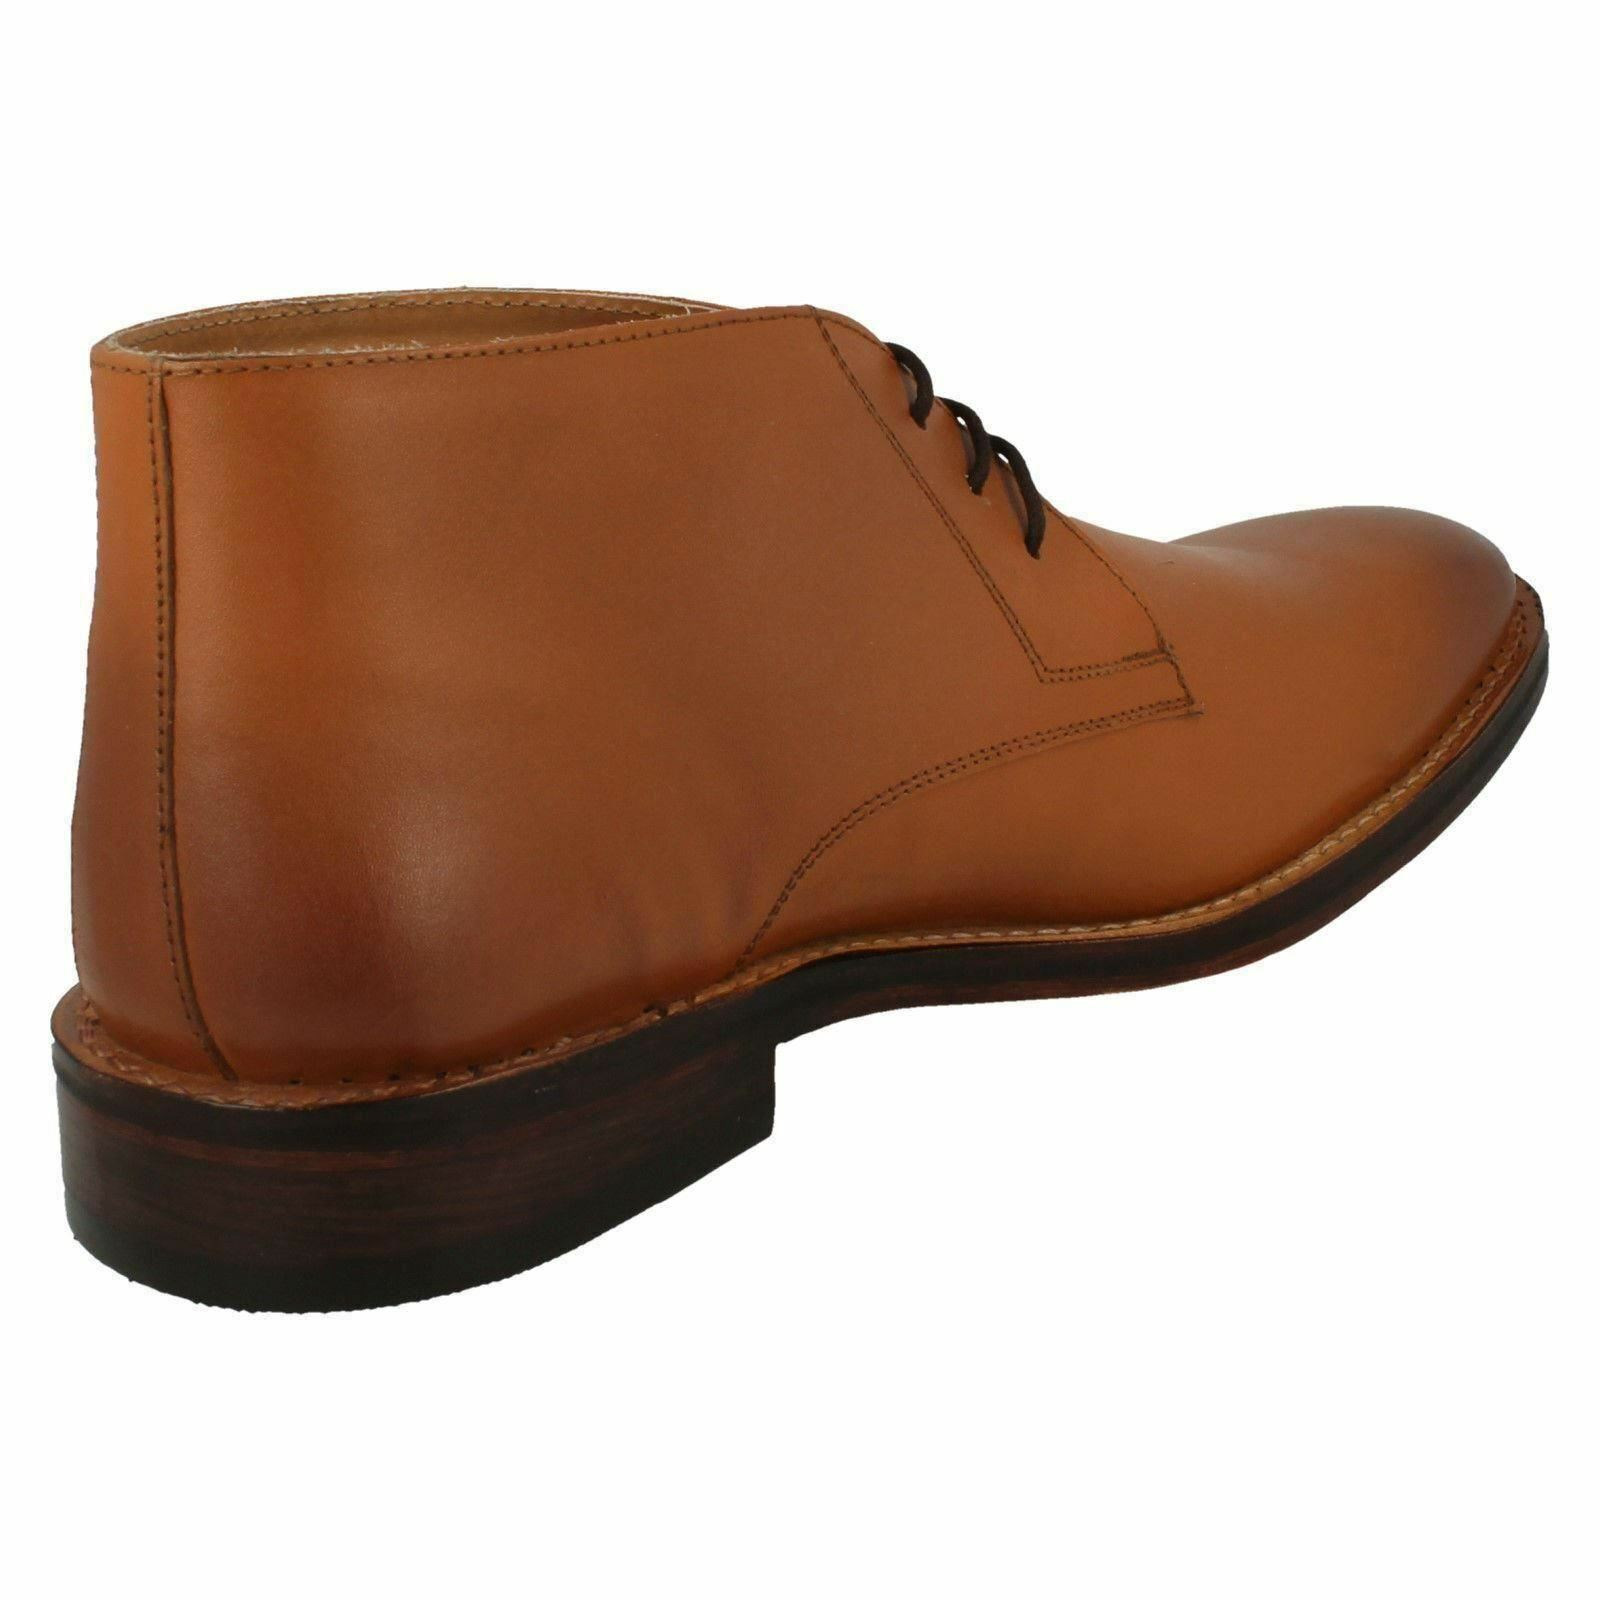 Uomo MCW159 Boot 4400  Lace Up Ankle Boot MCW159 By Catesby e94d37